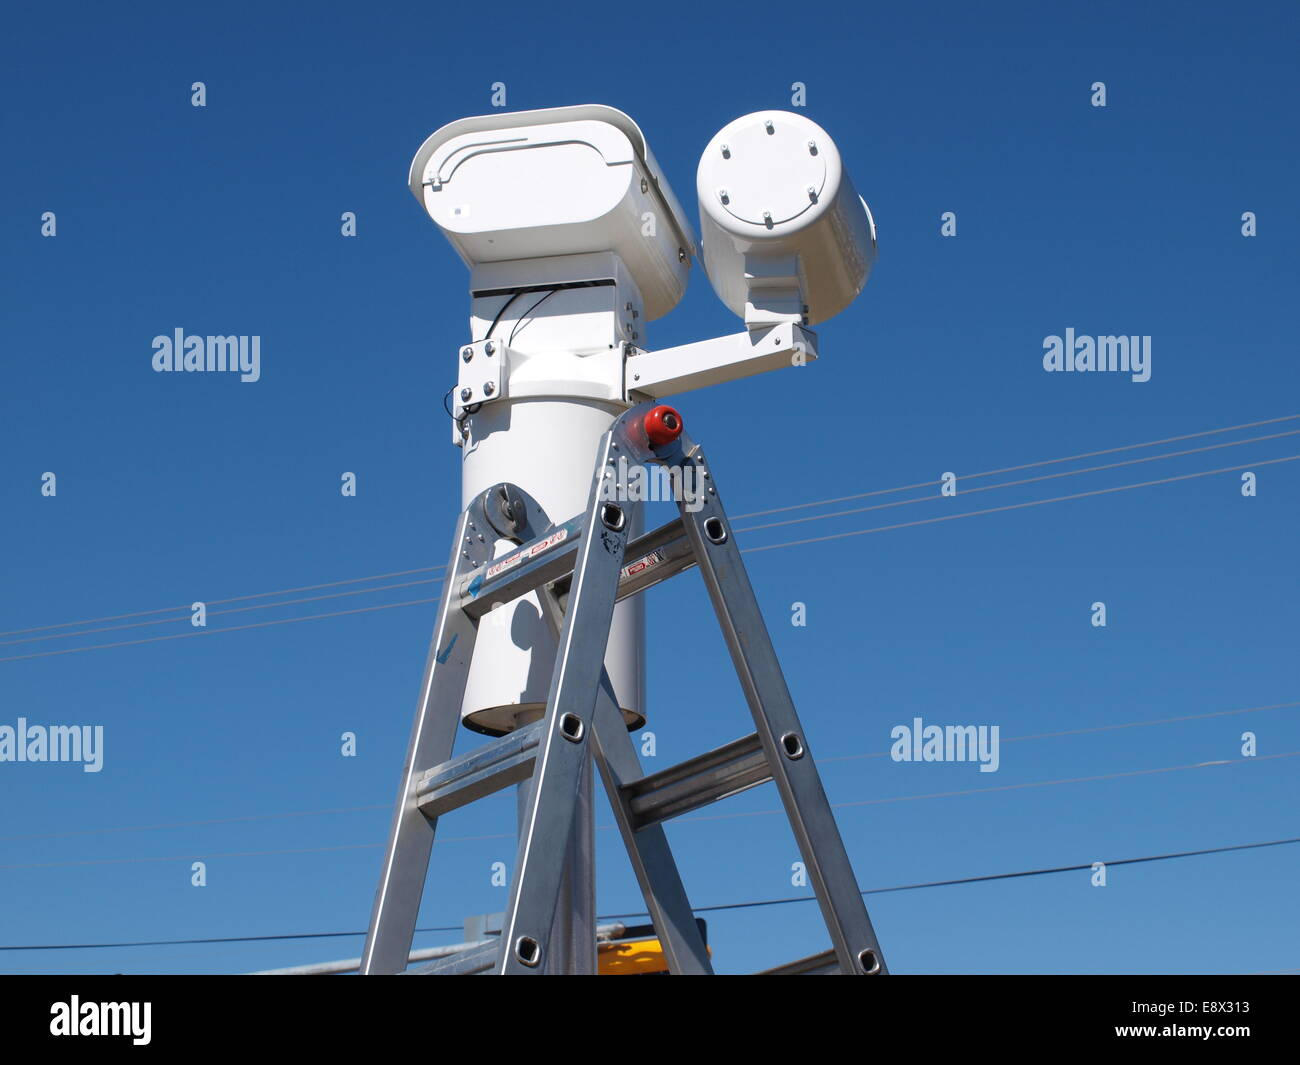 License Plate Readers Stock Photos & License Plate Readers